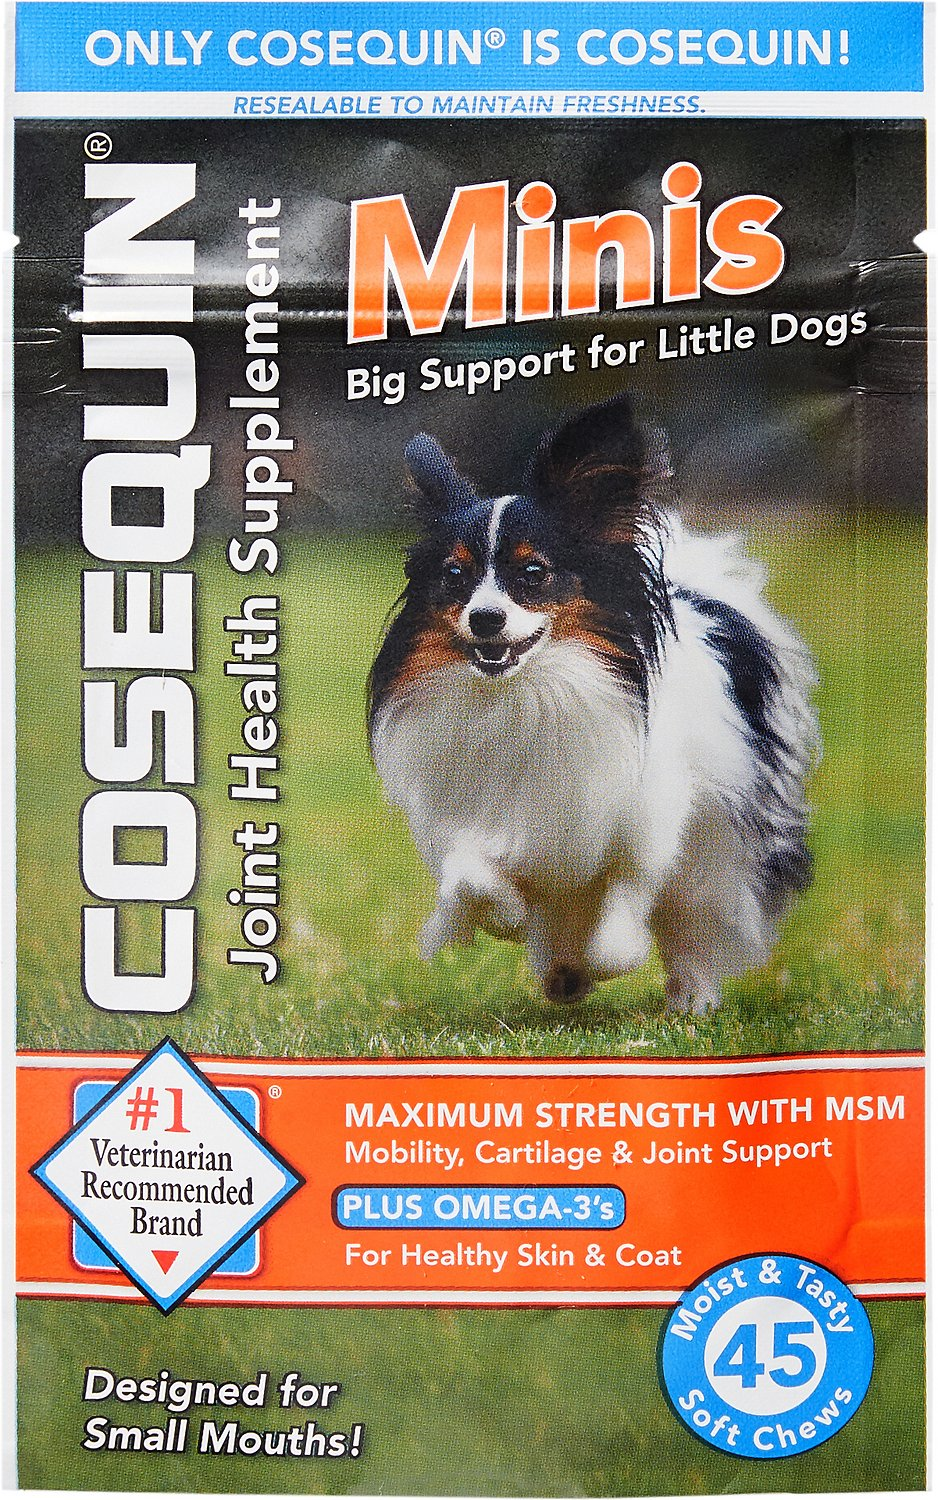 Nutramax Cosequin Maximum Strength with MSM Plus Omega-3's Mini Soft Chews Joint Health Small Dog Supplement, 45 count